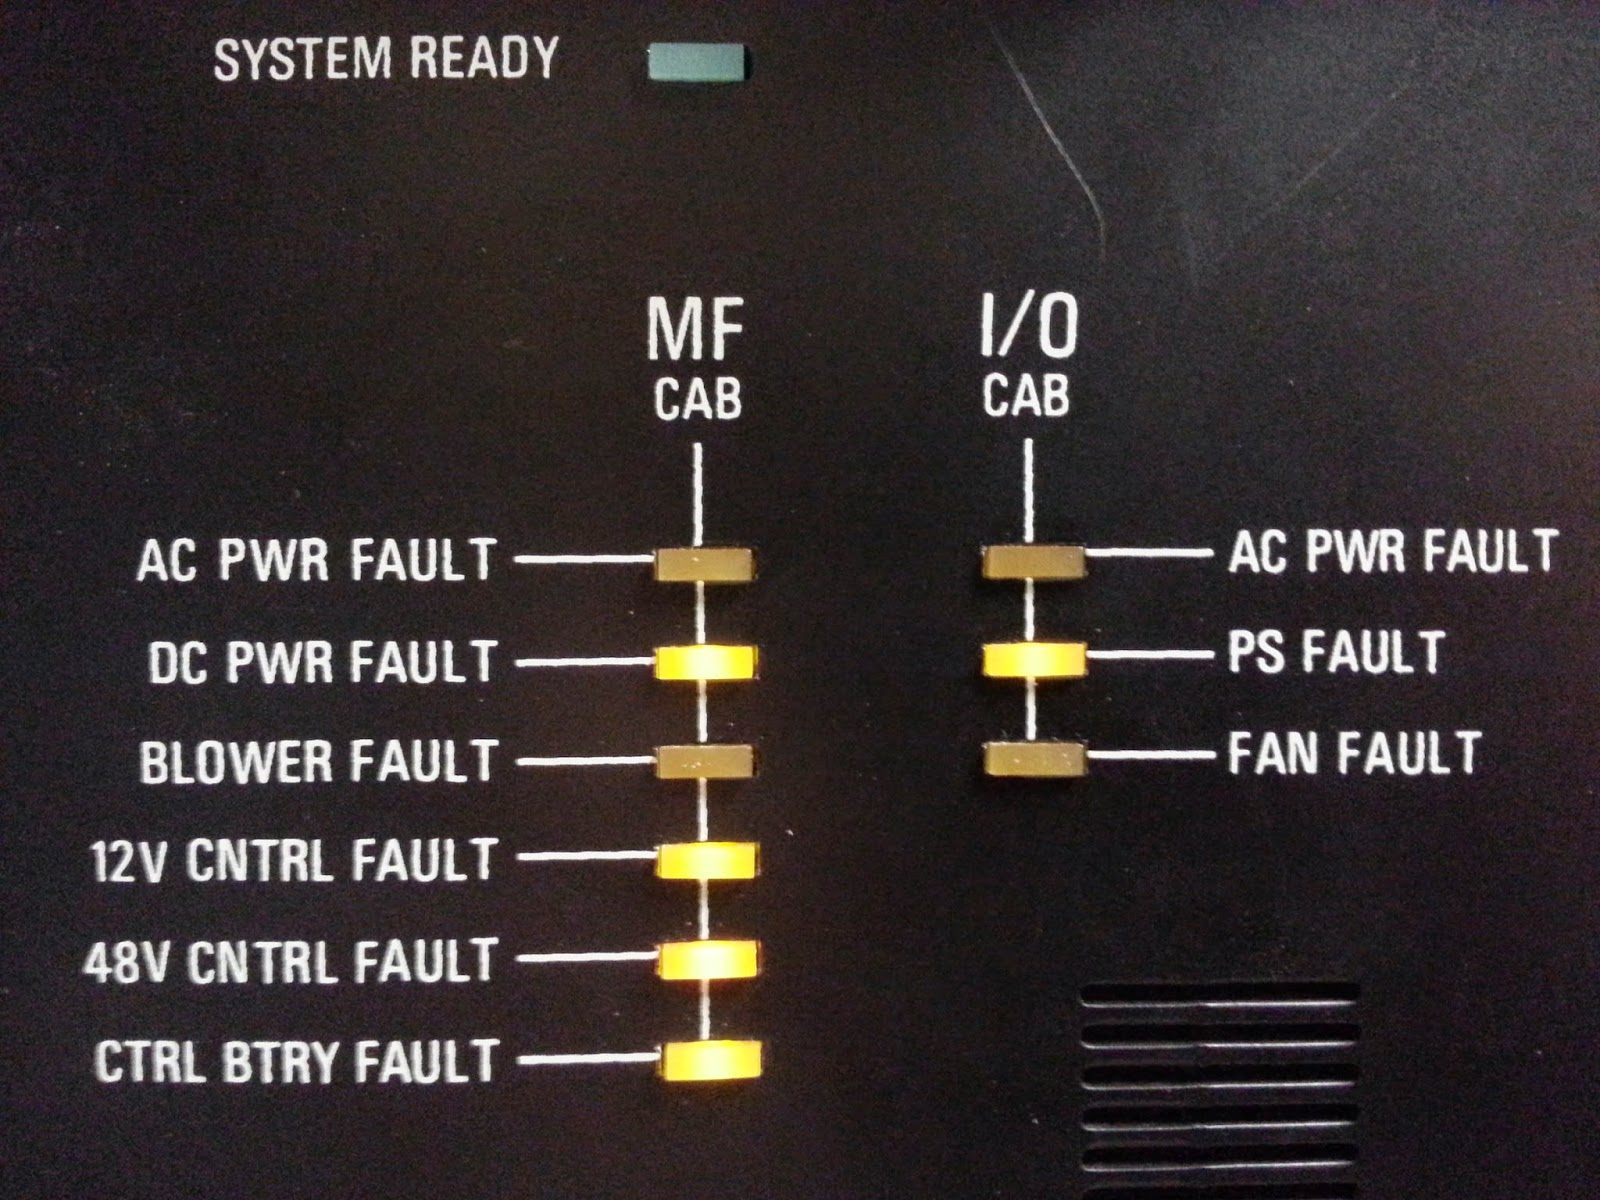 Fault lights on the CCU